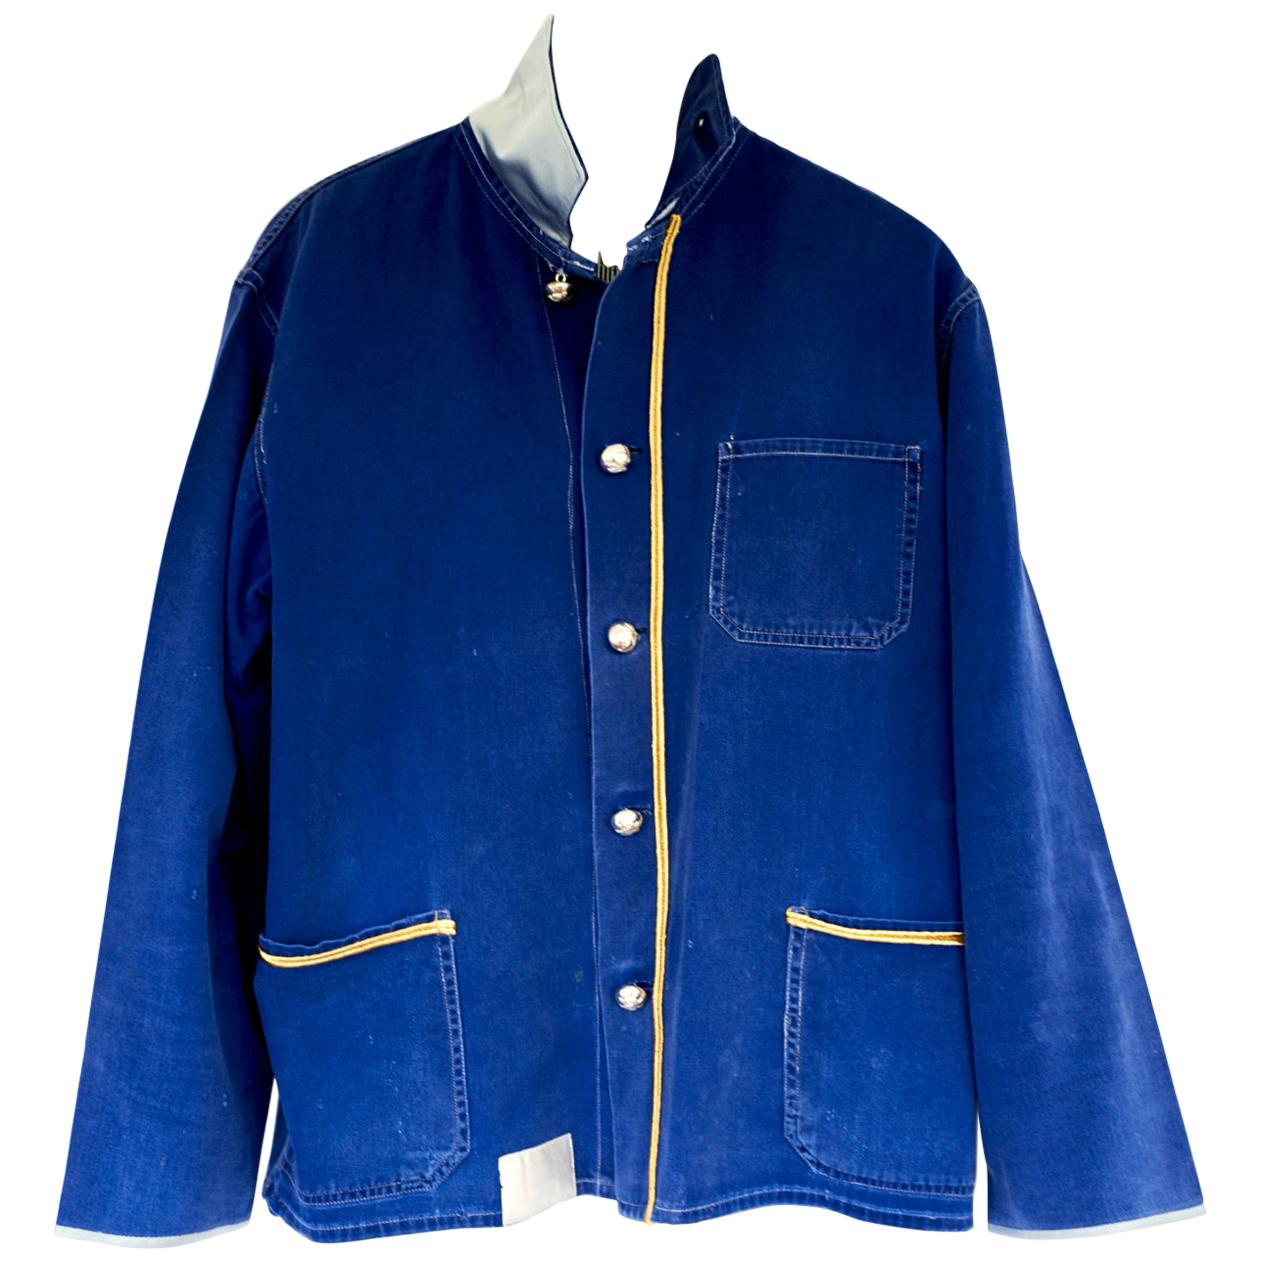 Embellished French Blue Jacket Painter Style Silver Buttons Gold Braid J Dauphin